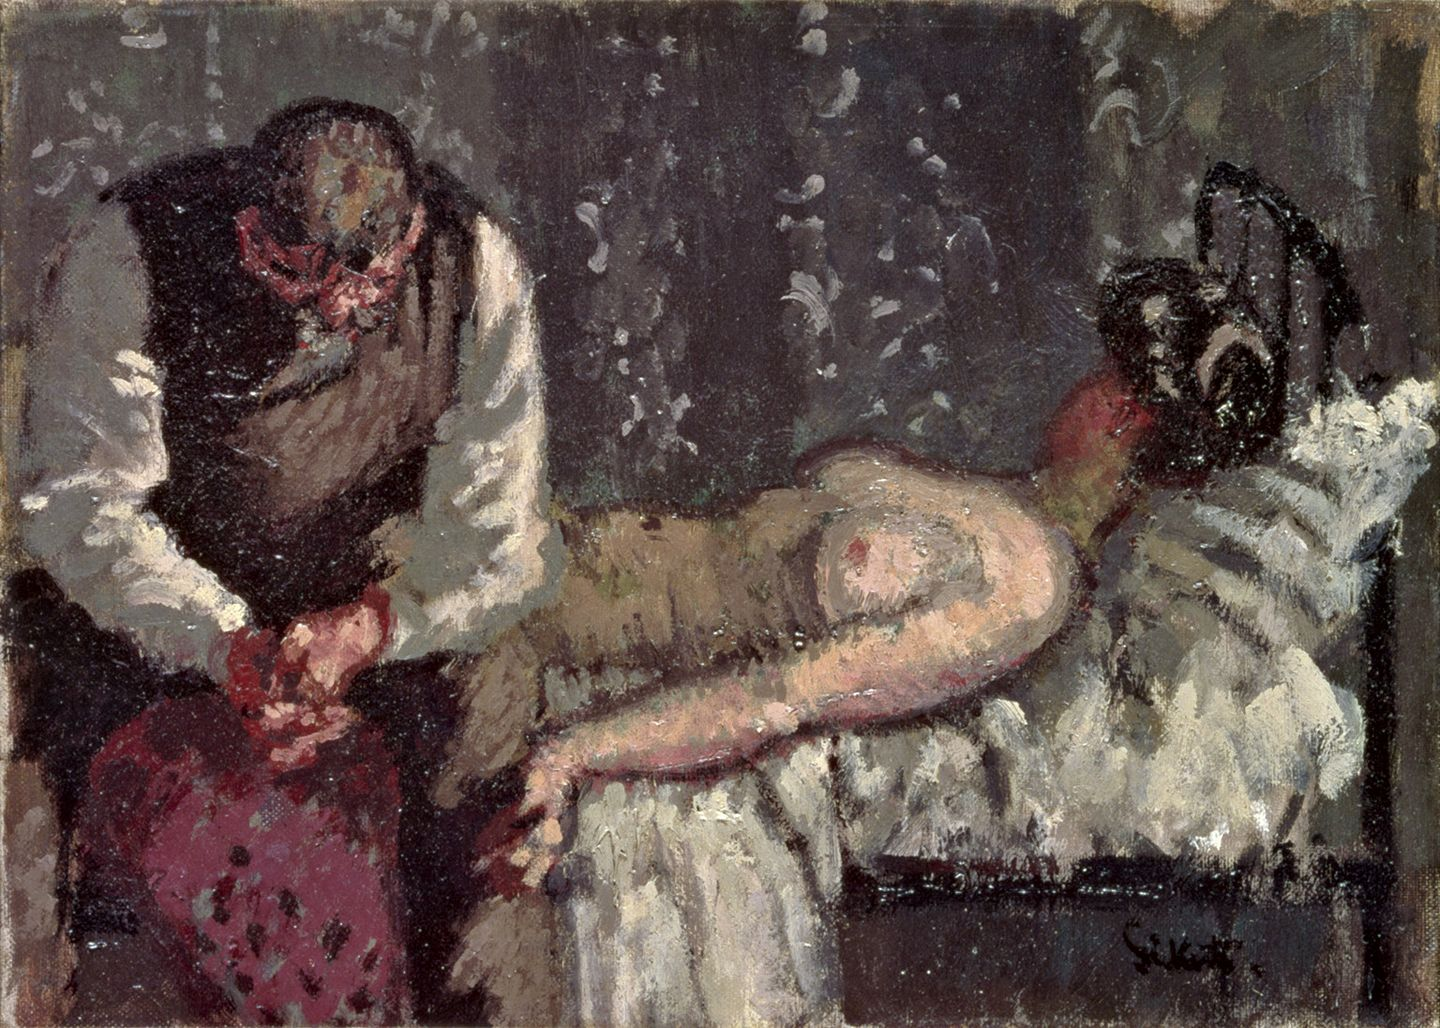 Walter Sickert The Camden Town Murder, or What Shall We Do For the Rent (1908). Yale Center for British Art (Paul Mellon Fund B1979.37.1), New Haven, Connecticut ©Estate of Walter R. Sickert / DACS